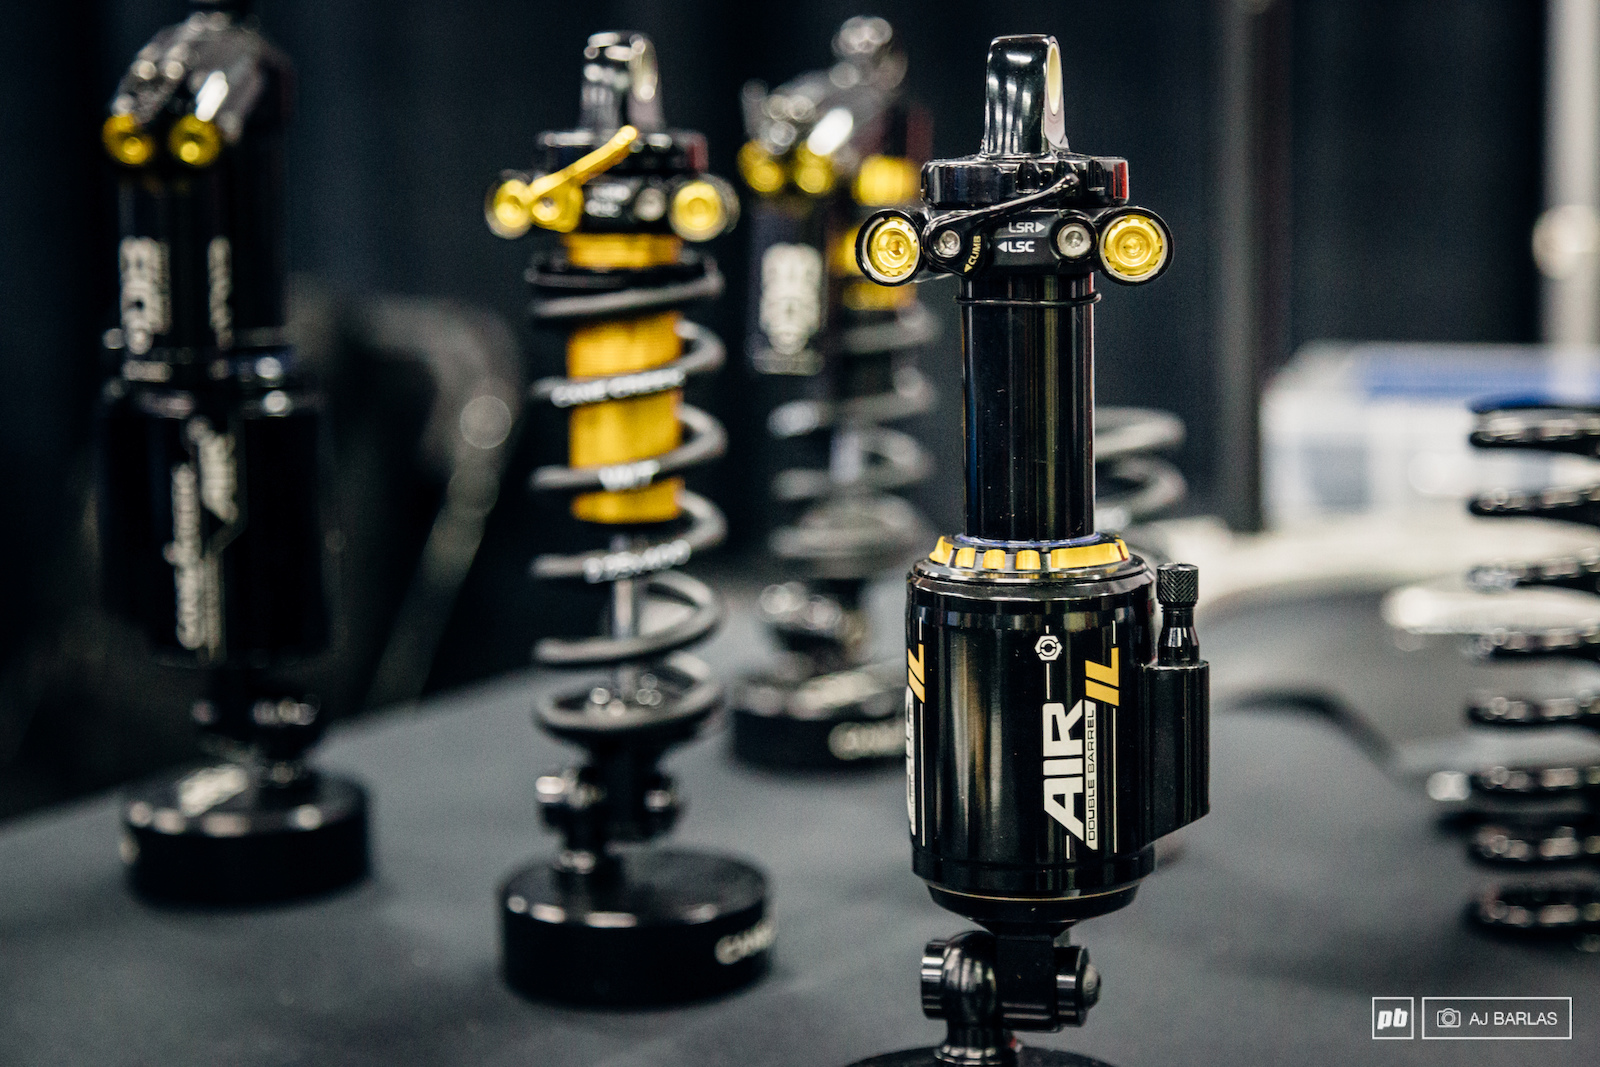 Cane Creek s recently released Air IL rear shock.